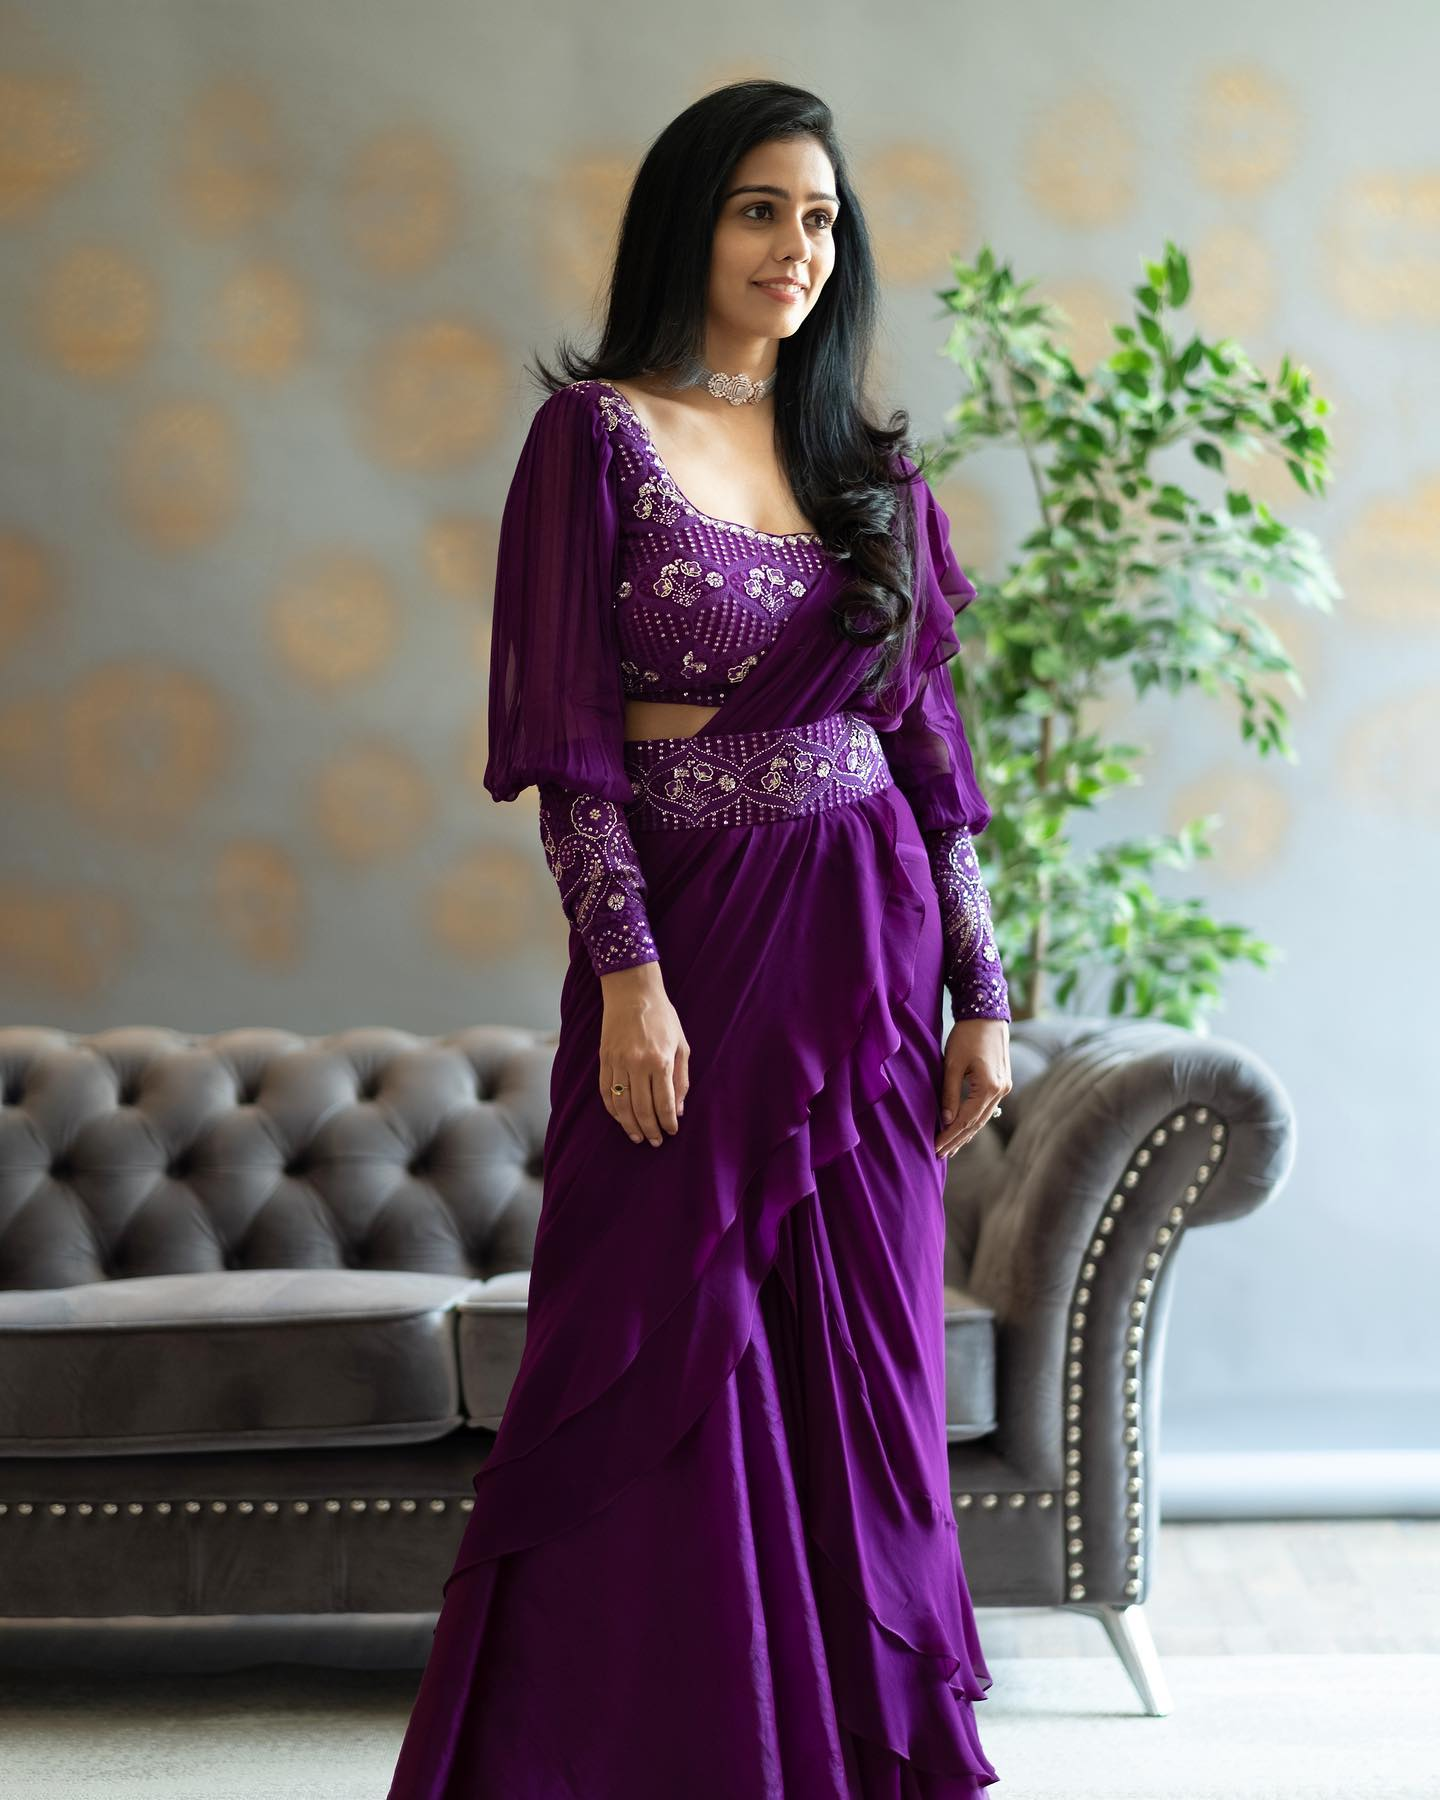 Stunning purple color ruffle saree and waist belt and full sleeve blouse. Blouse with hand embroidery work.   2021-05-24